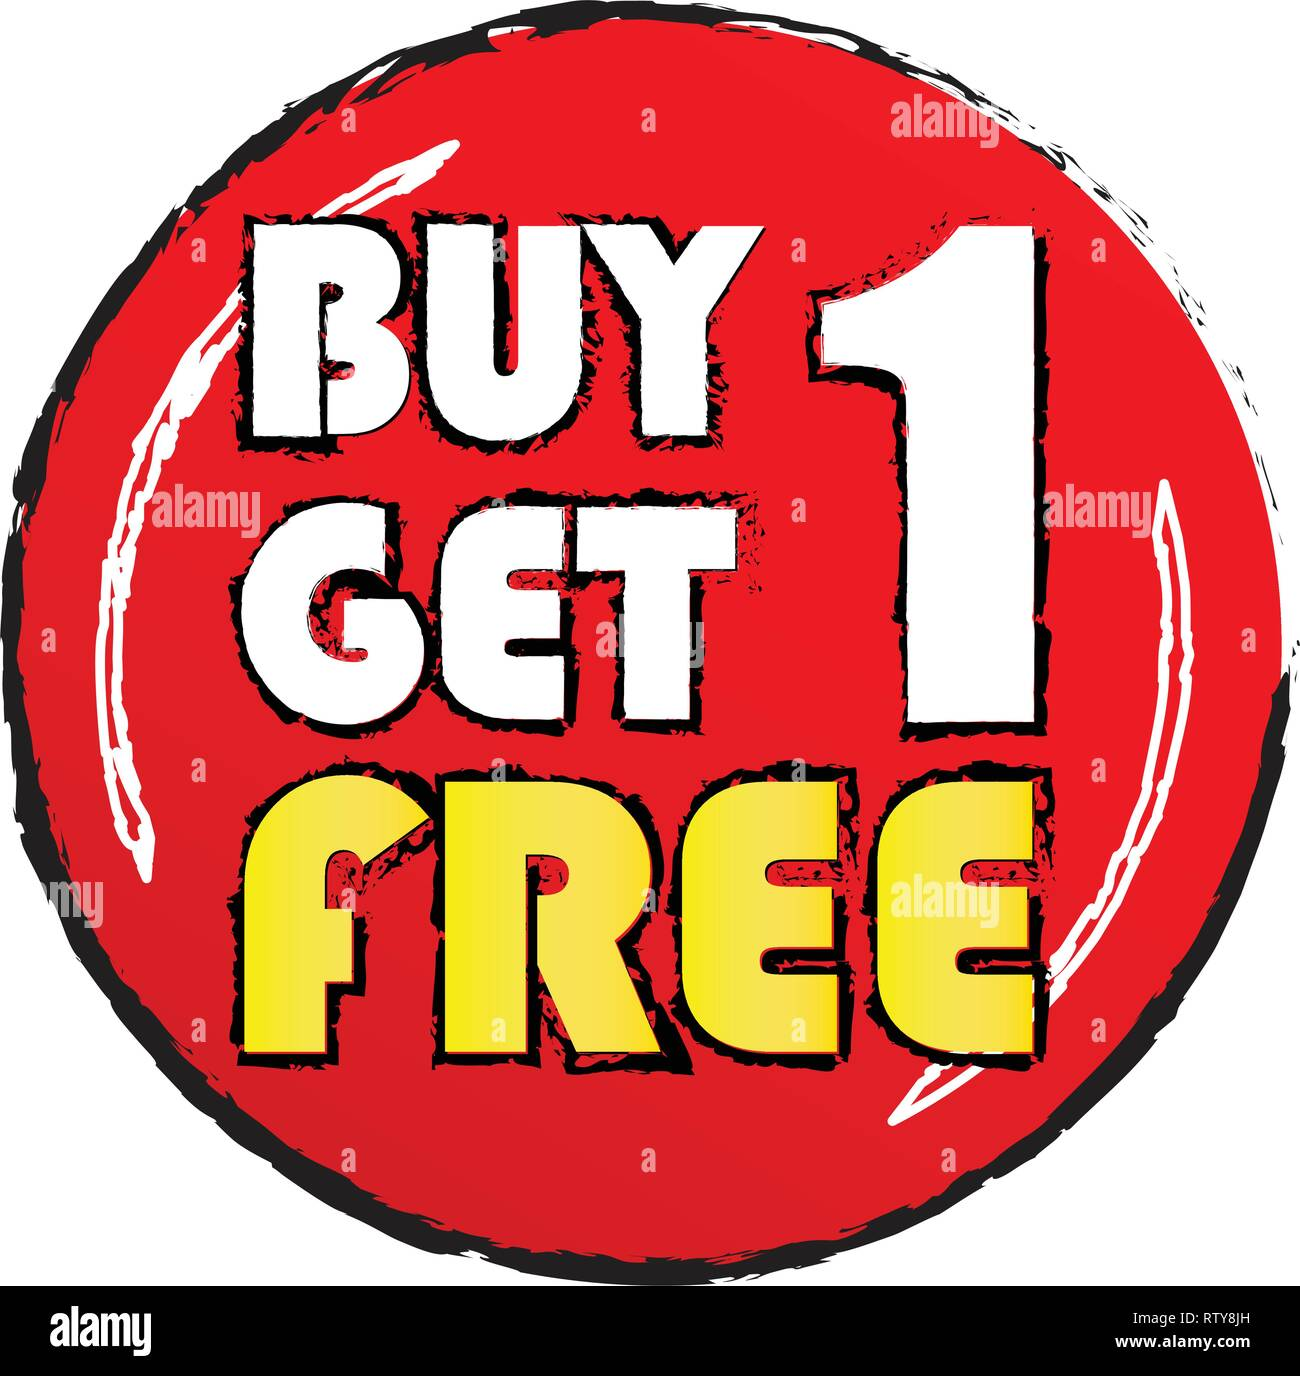 aa6b225c1b Buy one get 1 free sticker. White and yellow letters in red circle with  grunge edge.